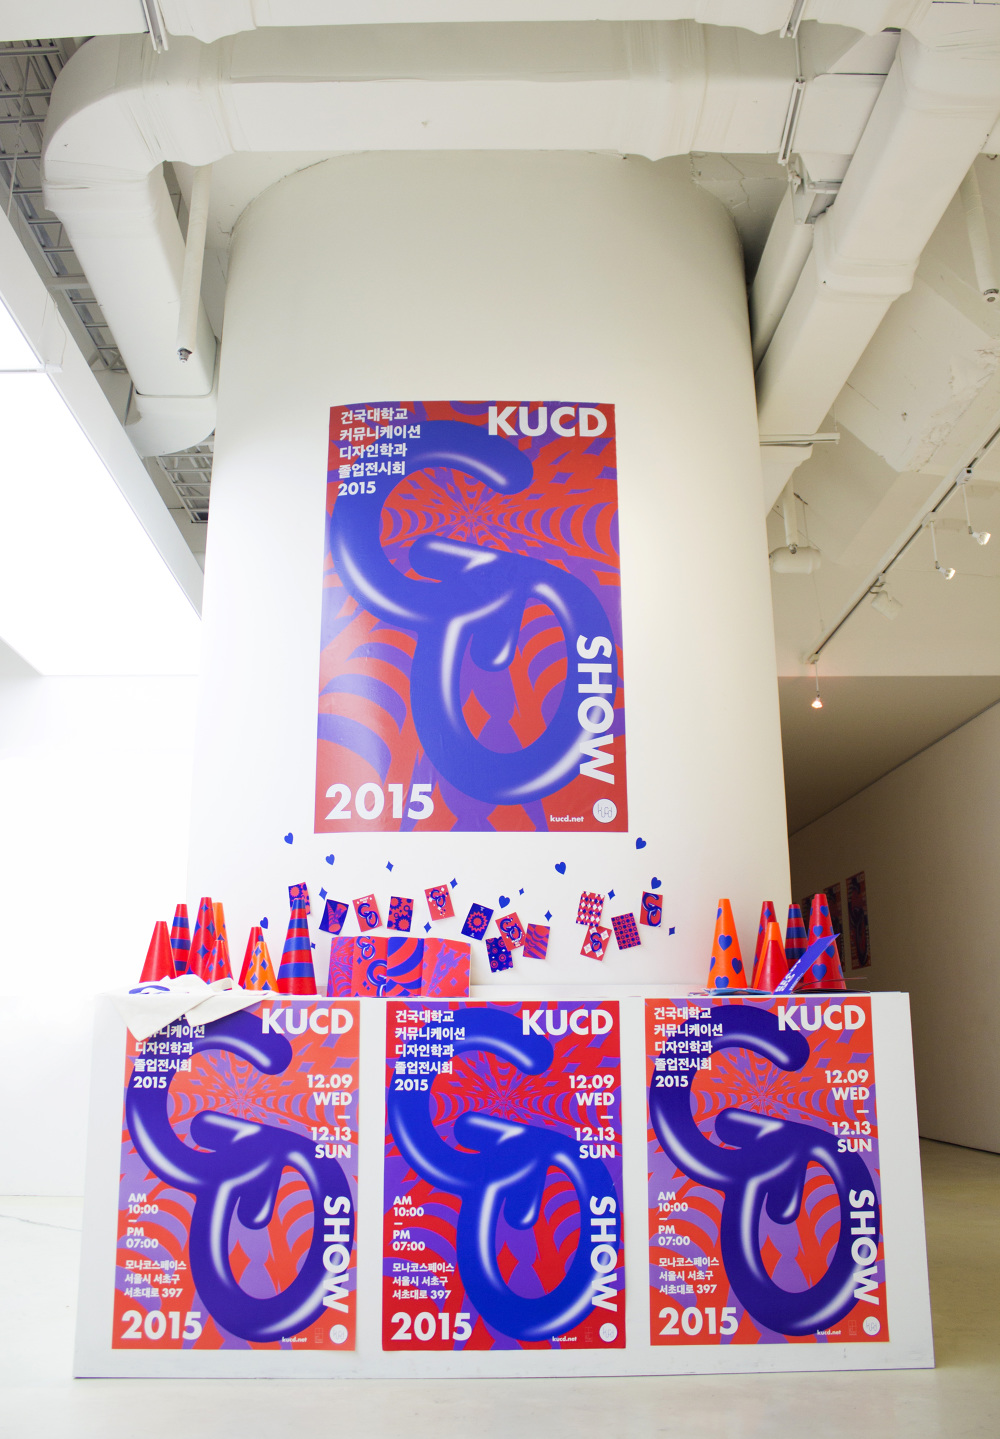 2015 kucd show identity graphic design rami for Is ready set decor legit